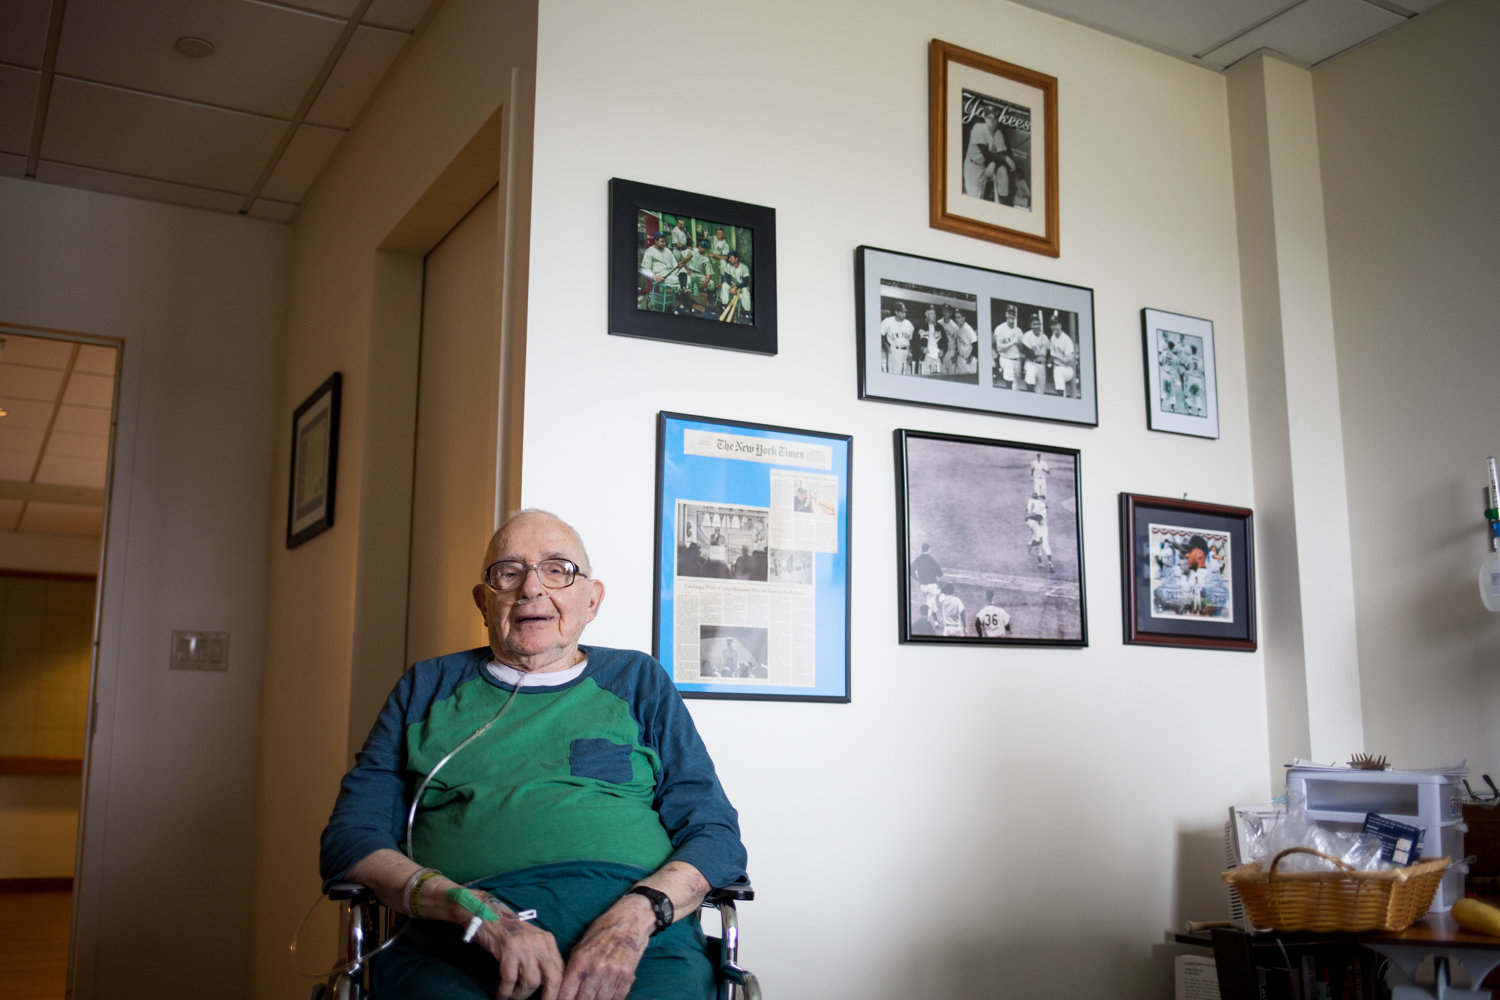 The wall in Alfred Schwartz's room at the Hebrew Home at Riverdale was adorned with images of the New York Yankees, a team he loved his entire life. He was honored for his service in World War II at Yankee Stadium in 2018 — a moment he shared with his daughters Heidi and Gayle, who are now grieving for him following his death from complications related to COVID-19.